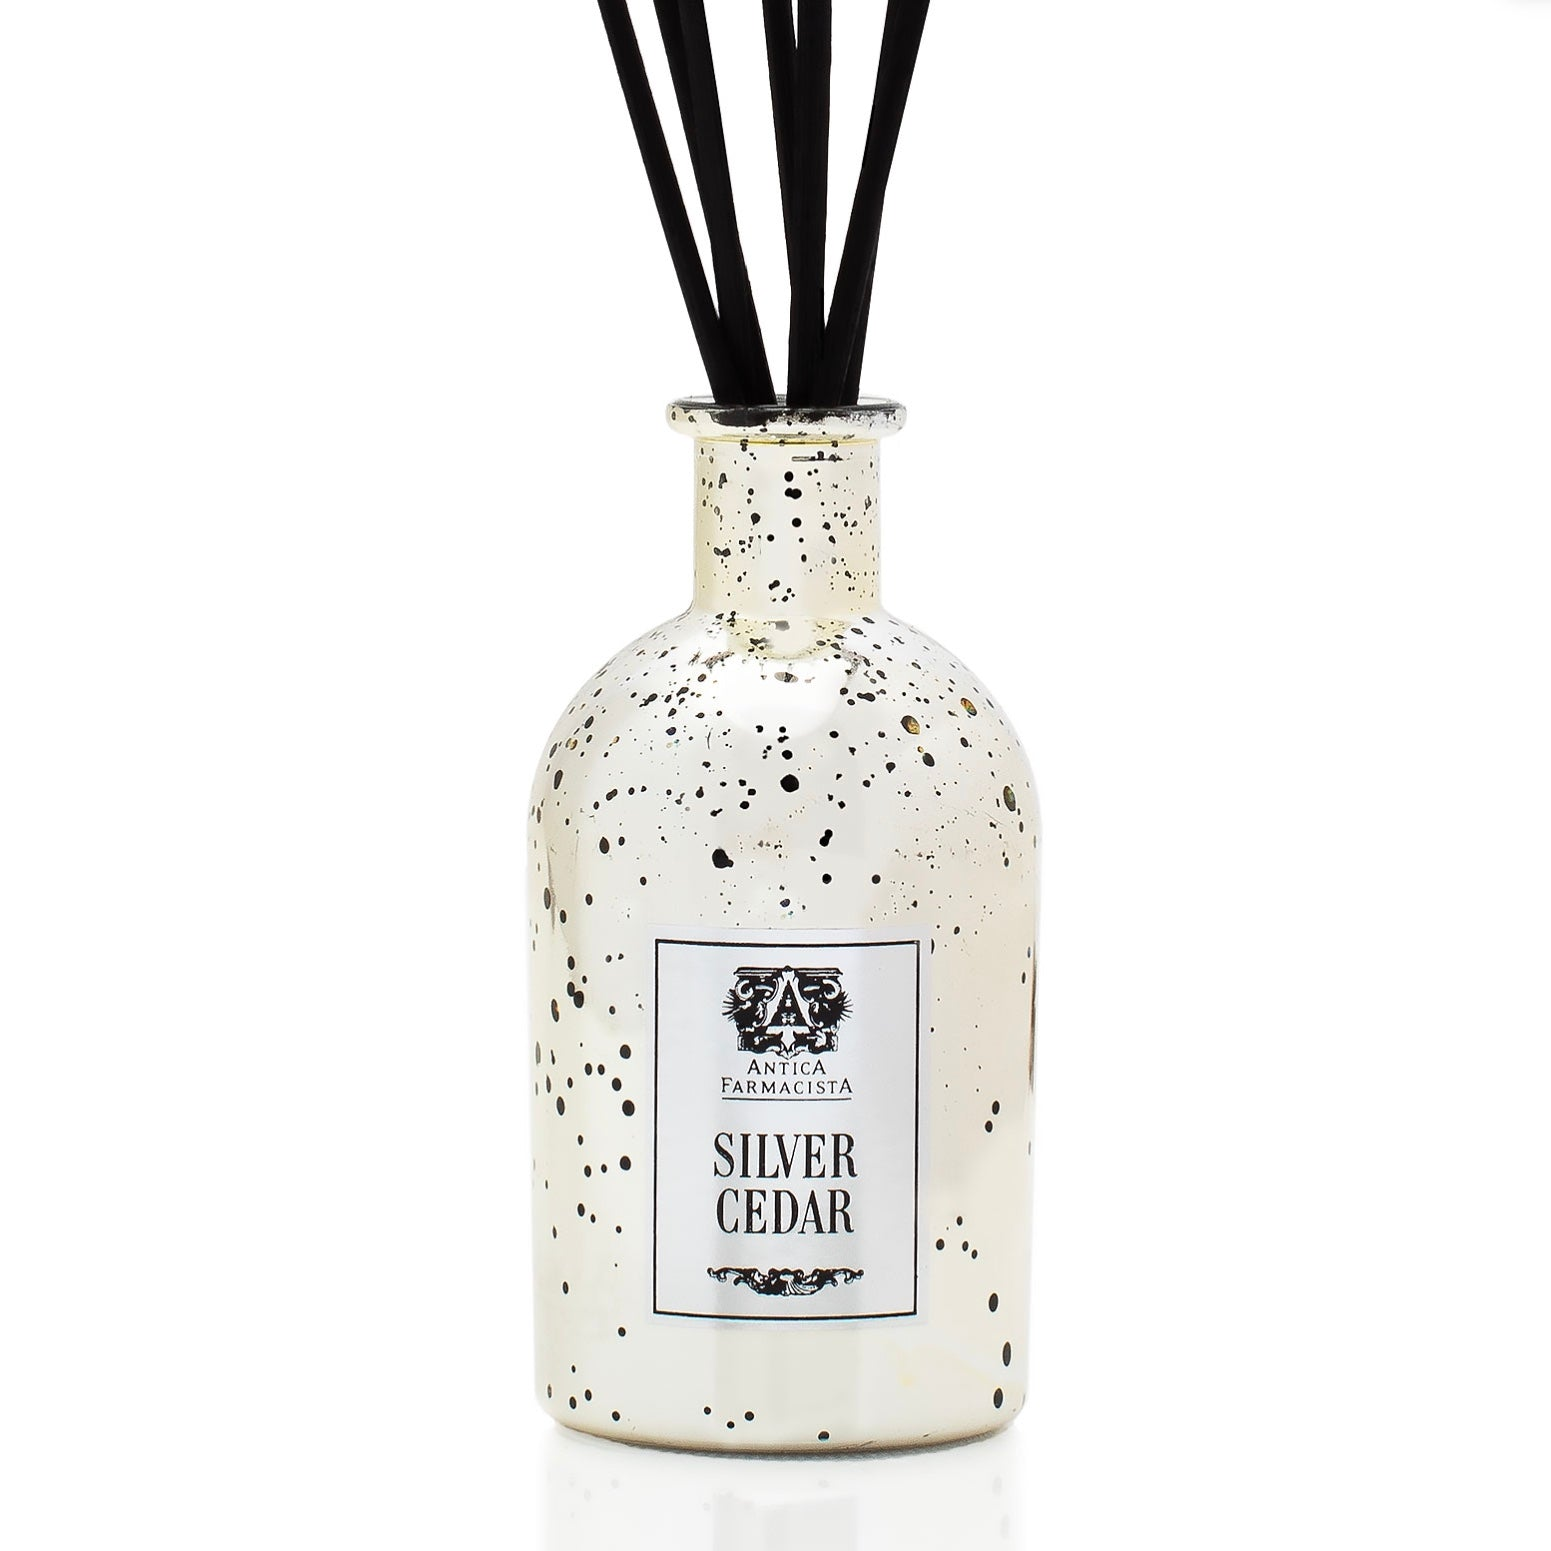 Antica Farmacista Silver Cedar Diffuser 250ml, AF-Antica Farmacista, Putti Fine Furnishings